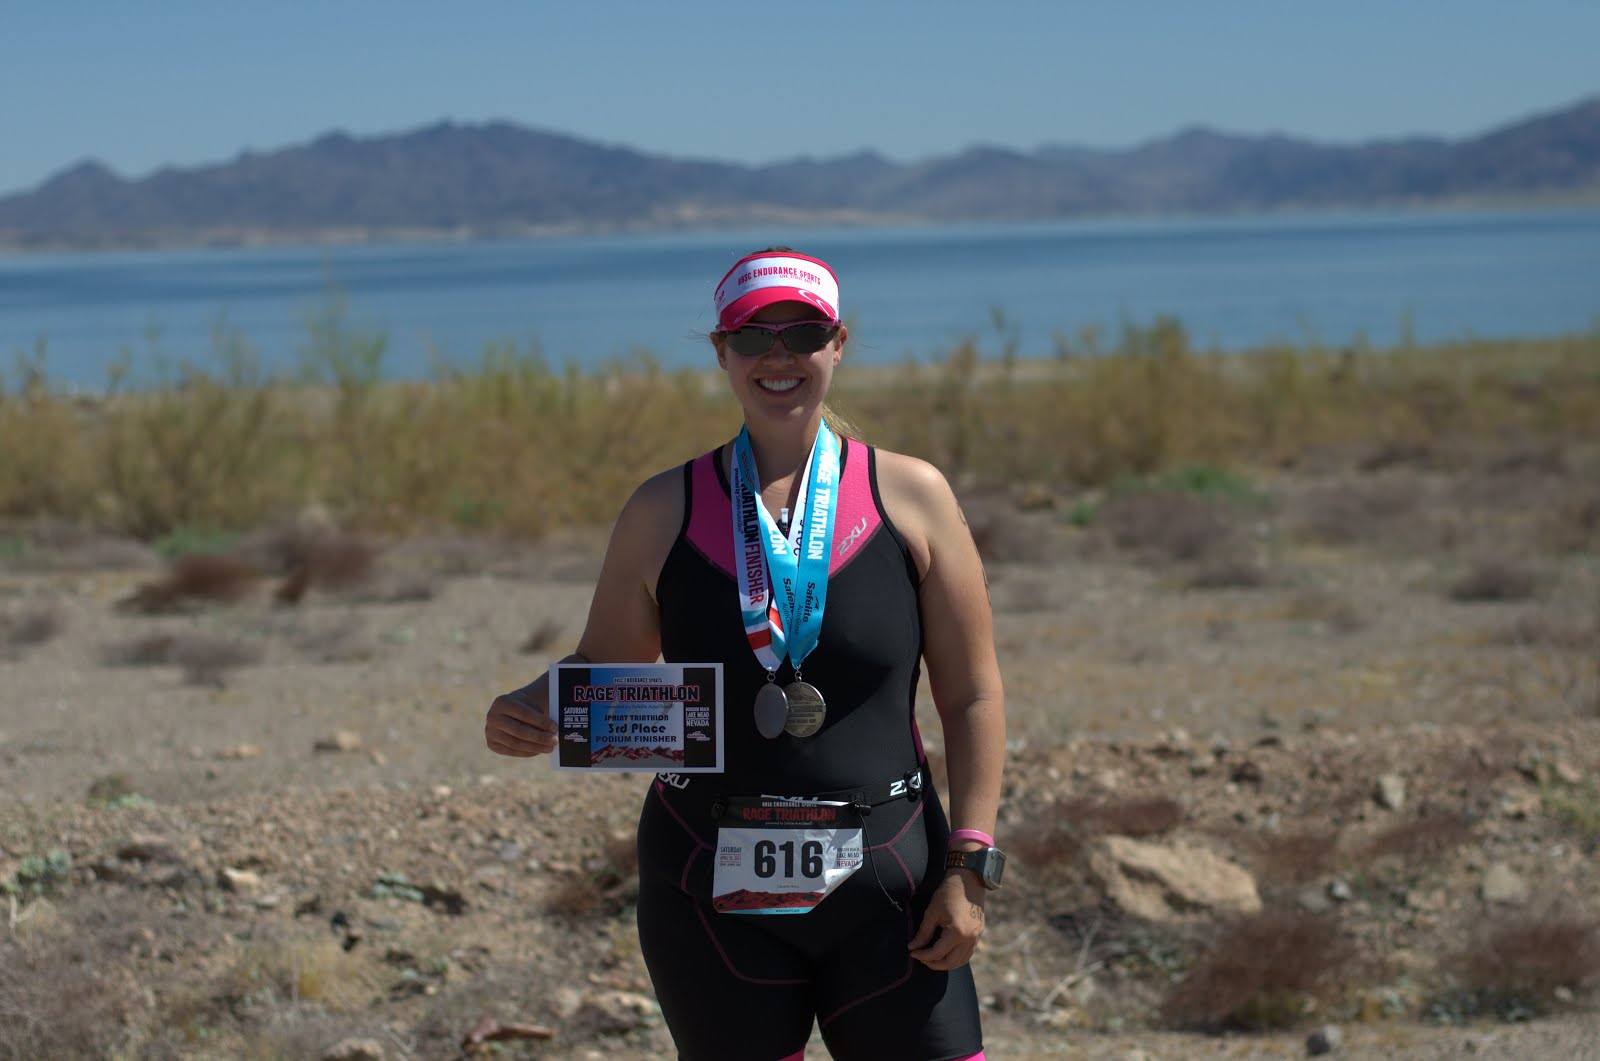 First Sprint Triathlon - Rage in NV